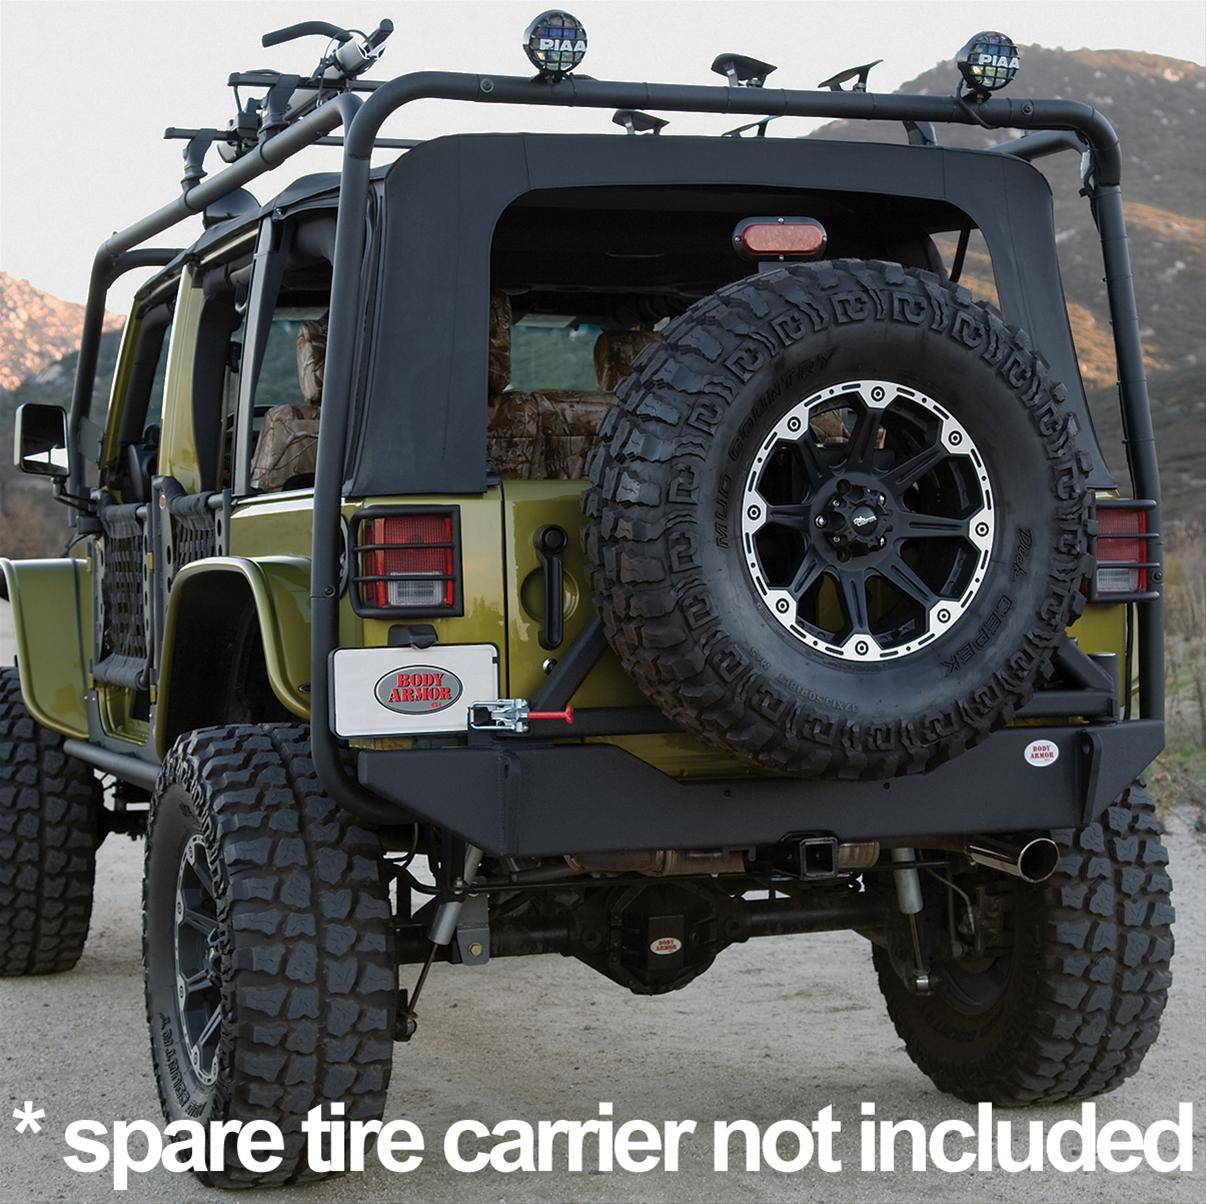 Body Armor 4x4 Rear Bumpers JK-2394 - Free Shipping on Orders Over $99 at  Summit Racing